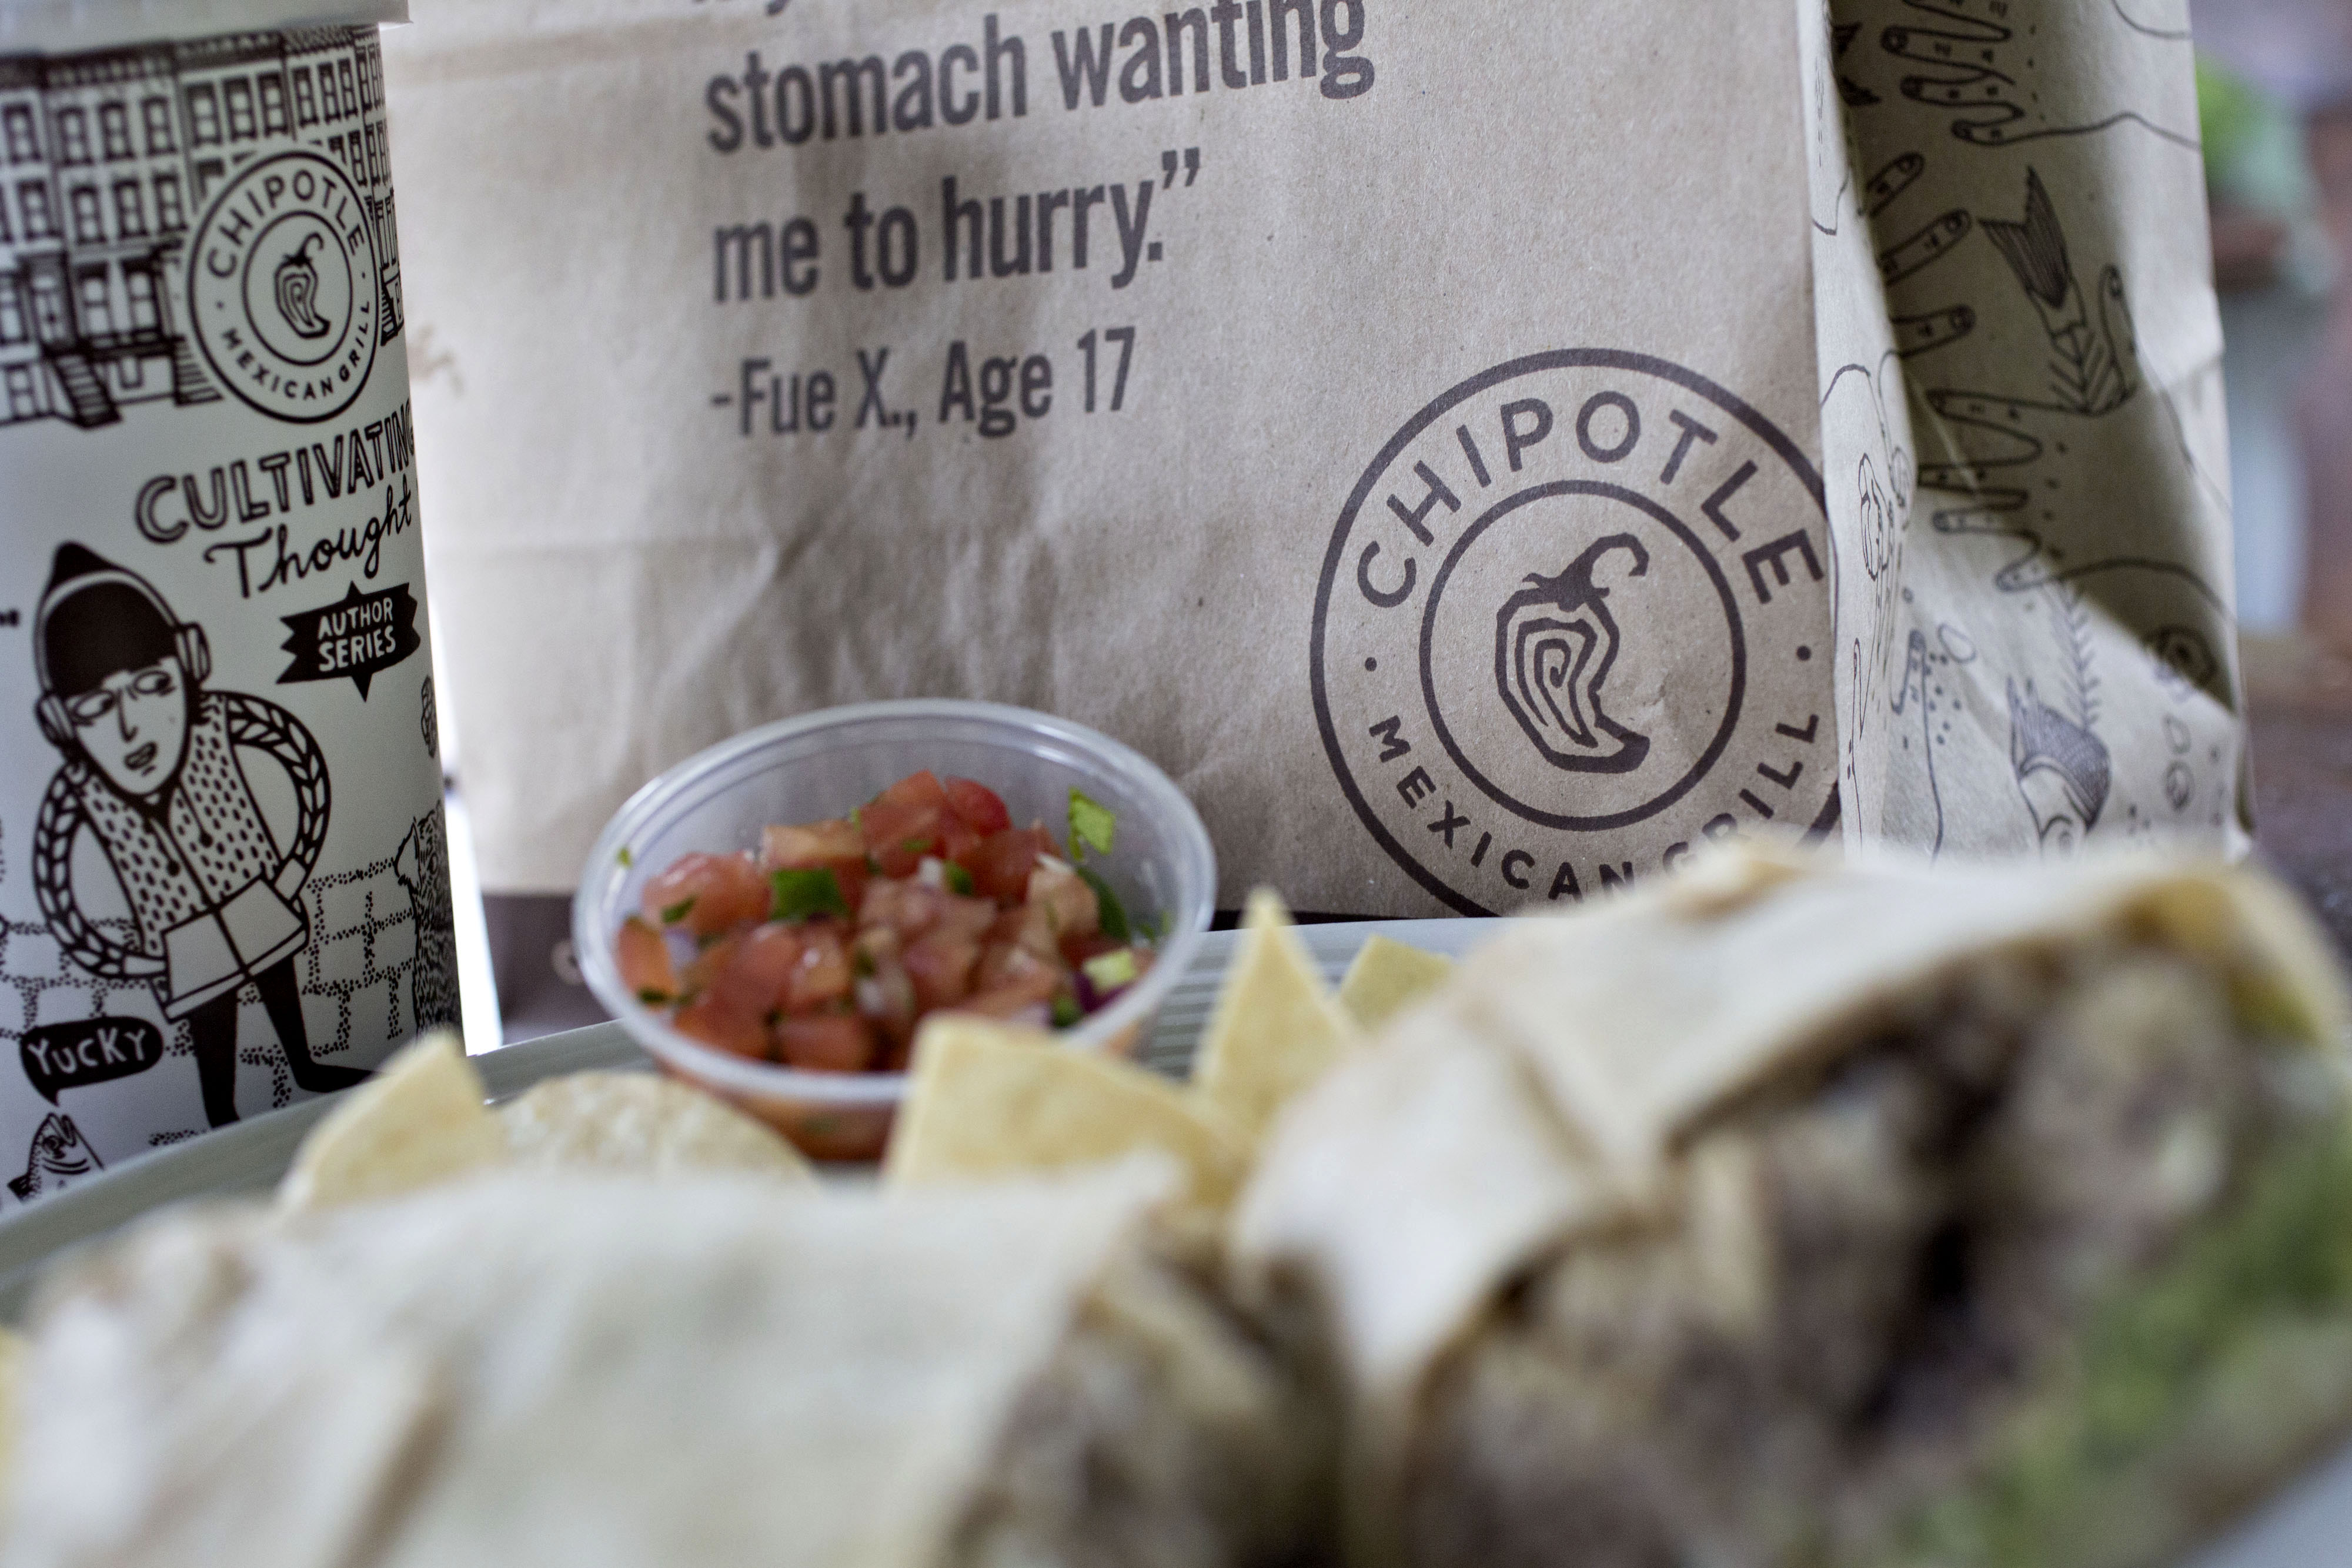 Chipotle Mexican Grill Inc. take-out food is arranged for a photograph in Tiskilwa, Illinois, U.S., on Friday, April 22, 2016. Bloomberg—Bloomberg via Getty Images